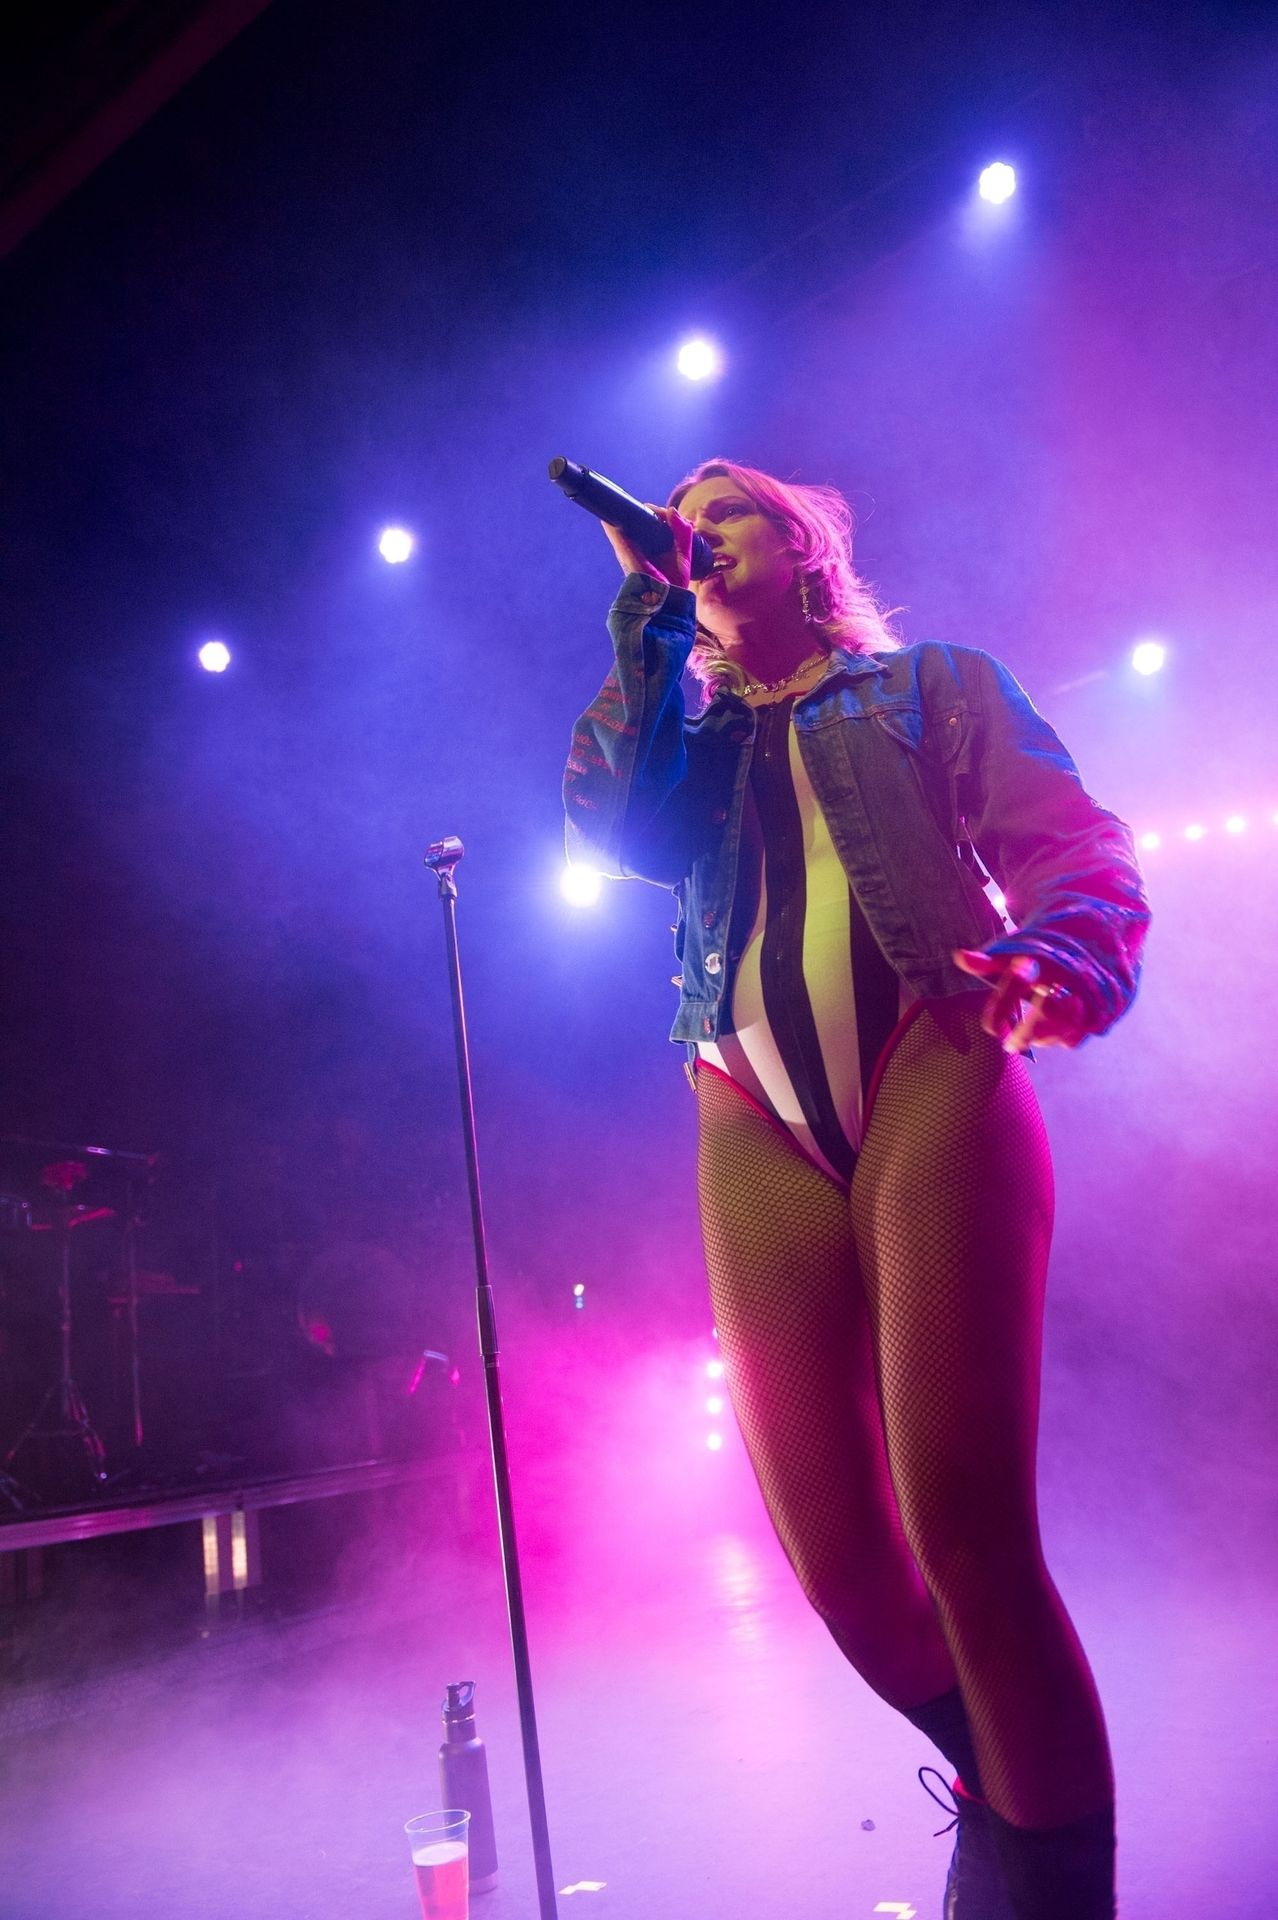 Tove Lo Is In Concert Performing Live At O2 Forum Kentish Town In London 0016